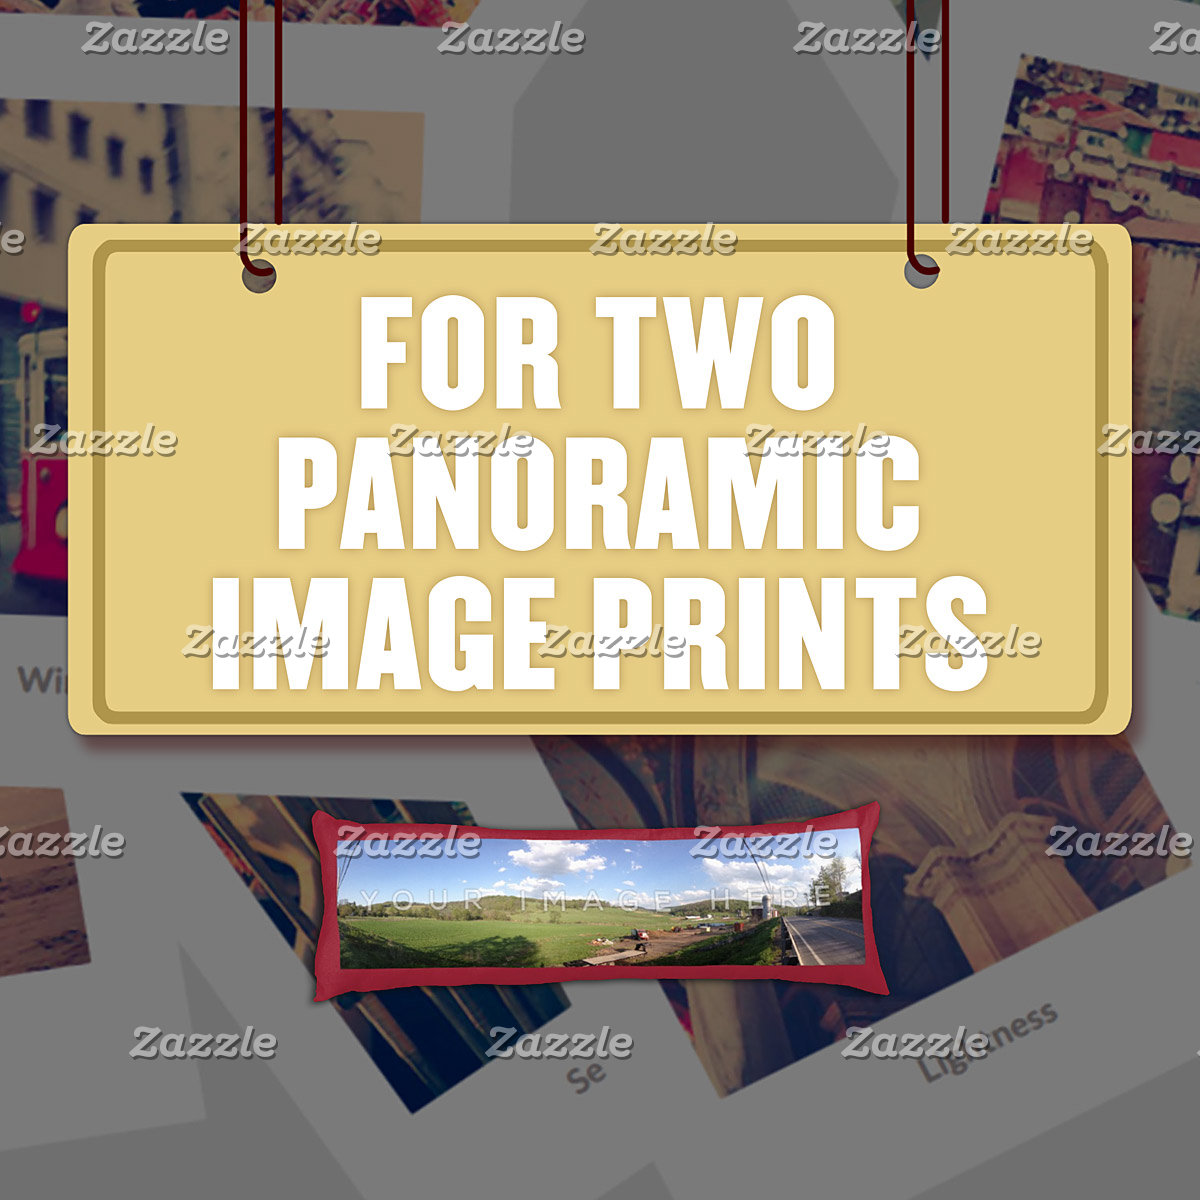 For Two (2) Panoramic Image Prints